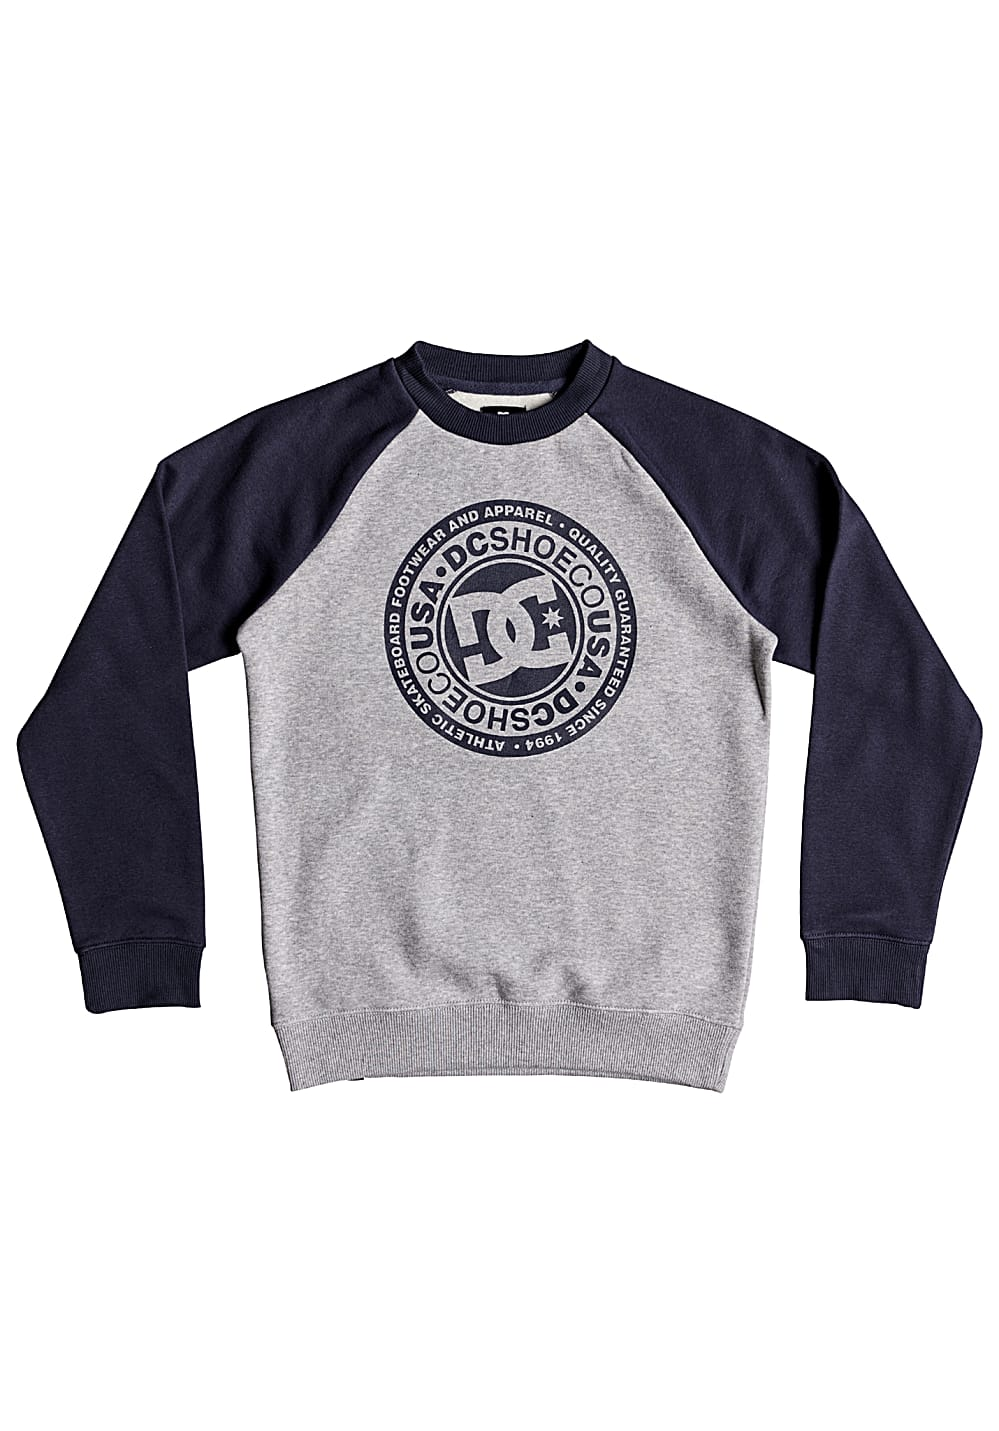 Boysoberteile - DC Circle Star Crew Sweatshirt für Jungs Mehrfarbig - Onlineshop Planet Sports